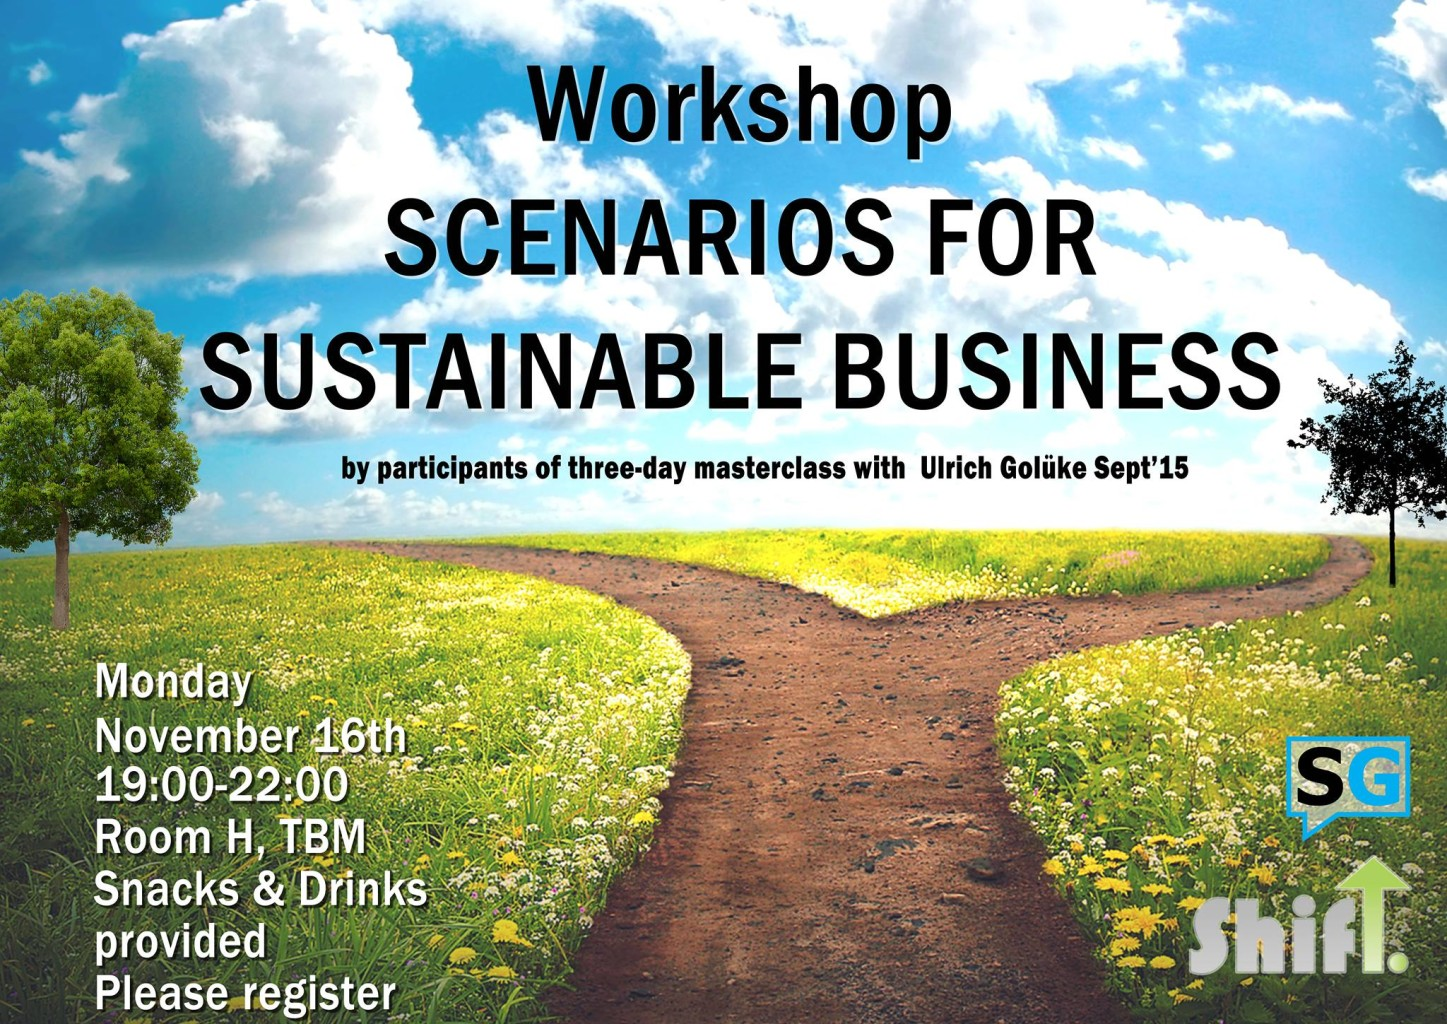 Scenarios for sustainable business